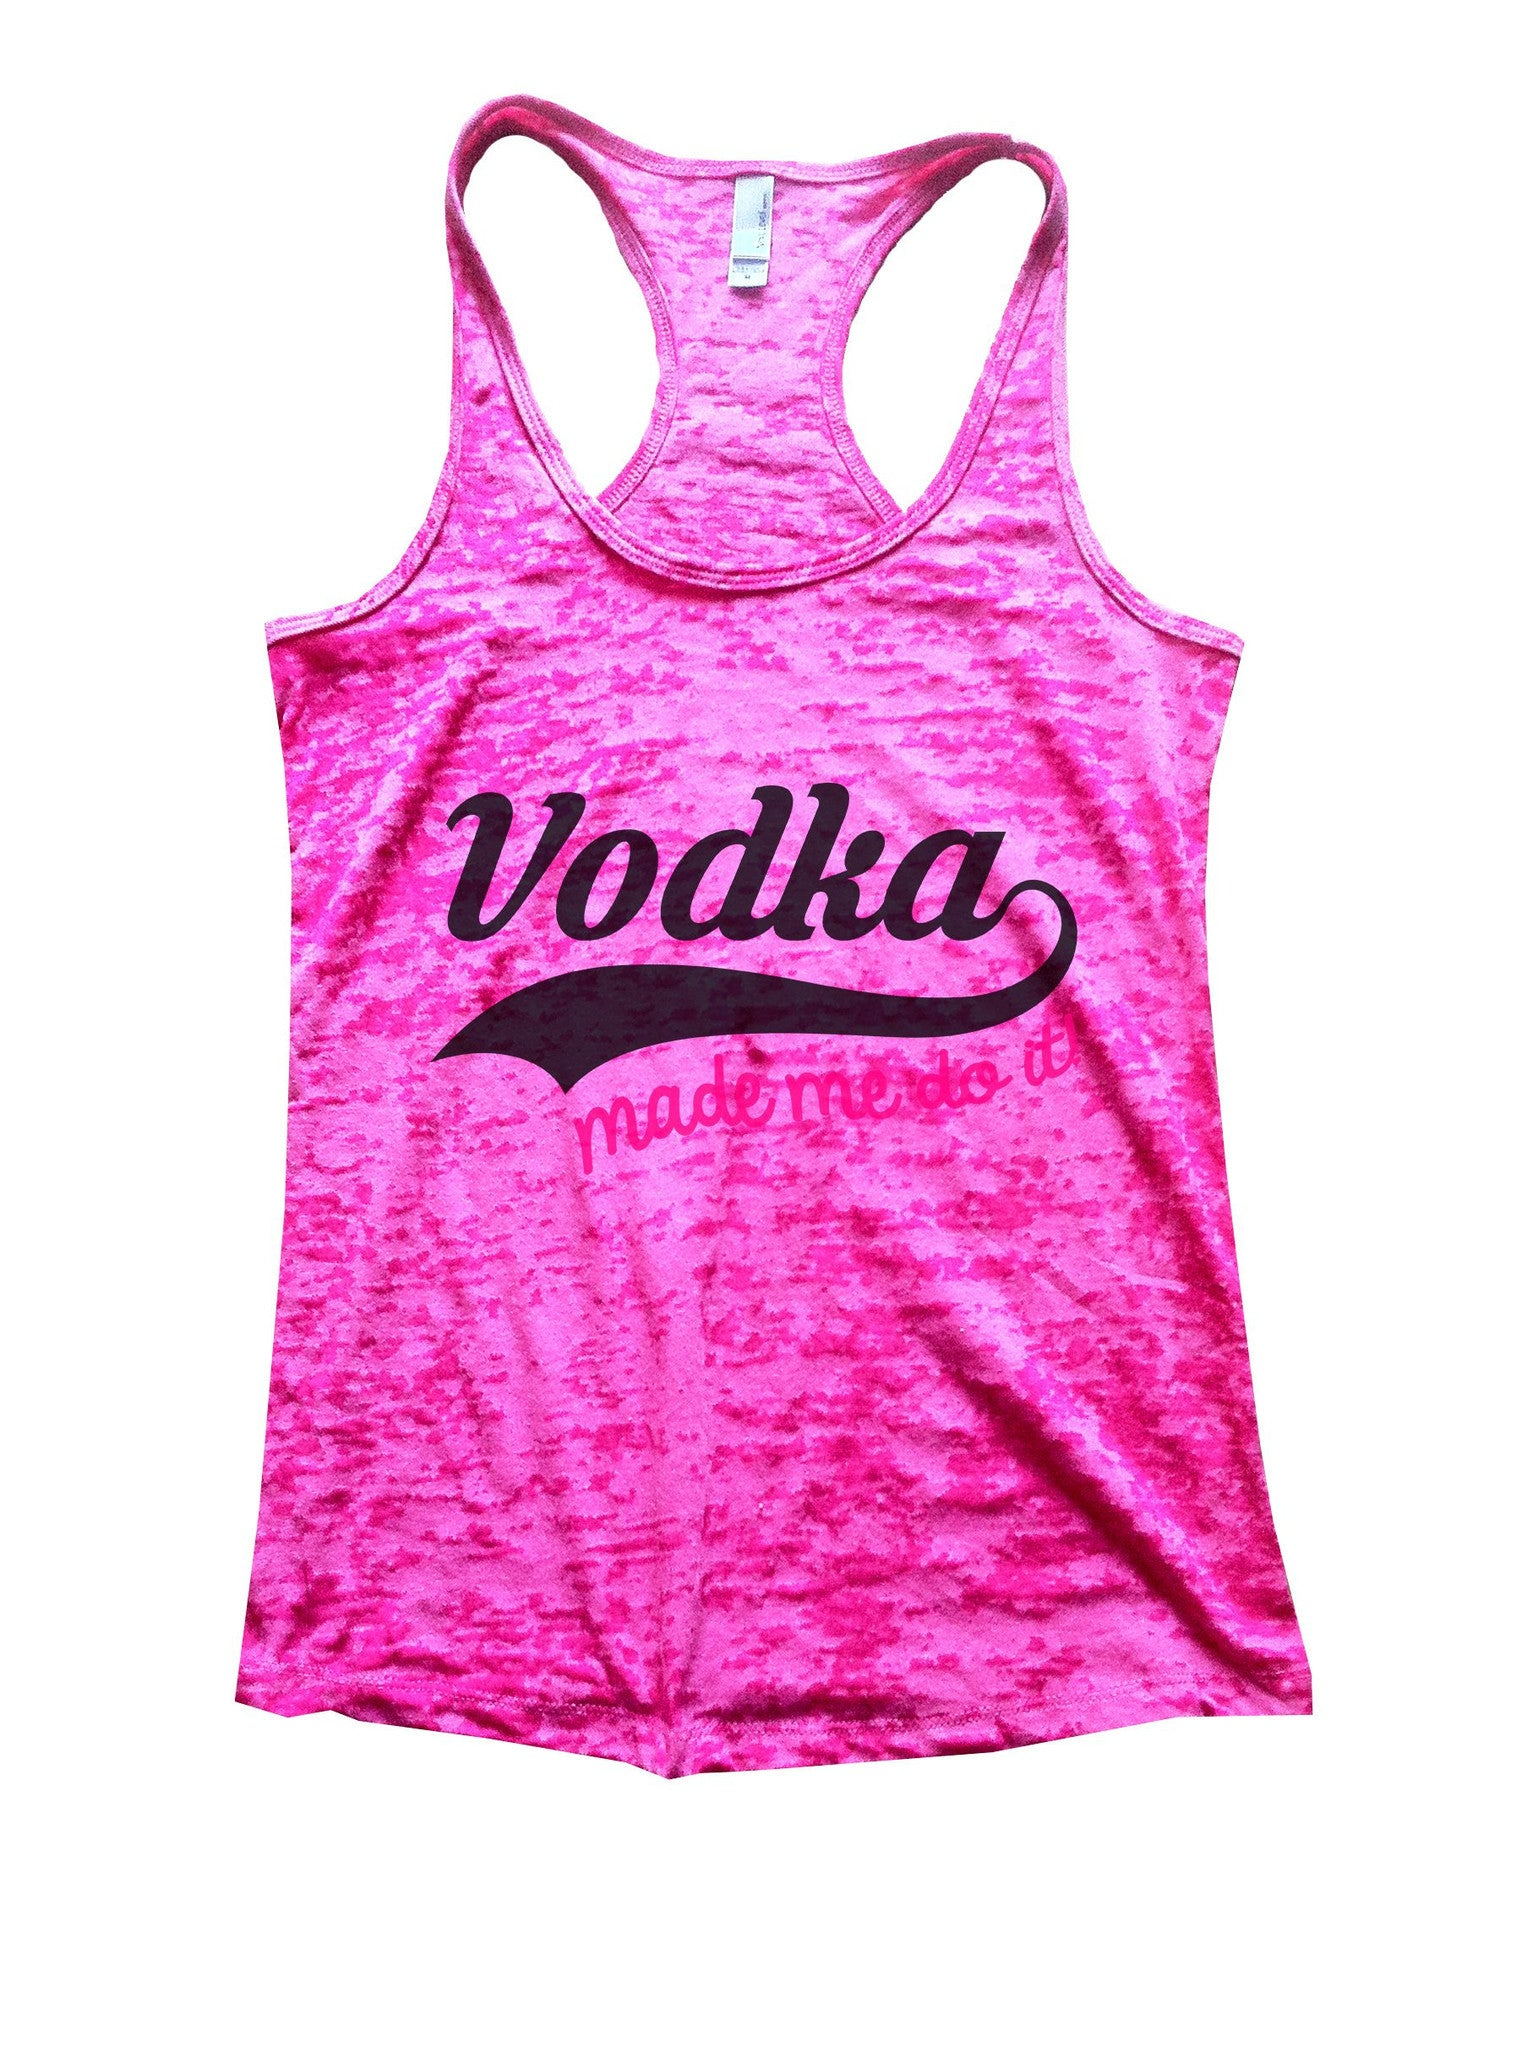 Vodka Made Me Do It! Burnout Tank Top By BurnoutTankTops.com - 1083 - Funny Shirts Tank Tops Burnouts and Triblends  - 5